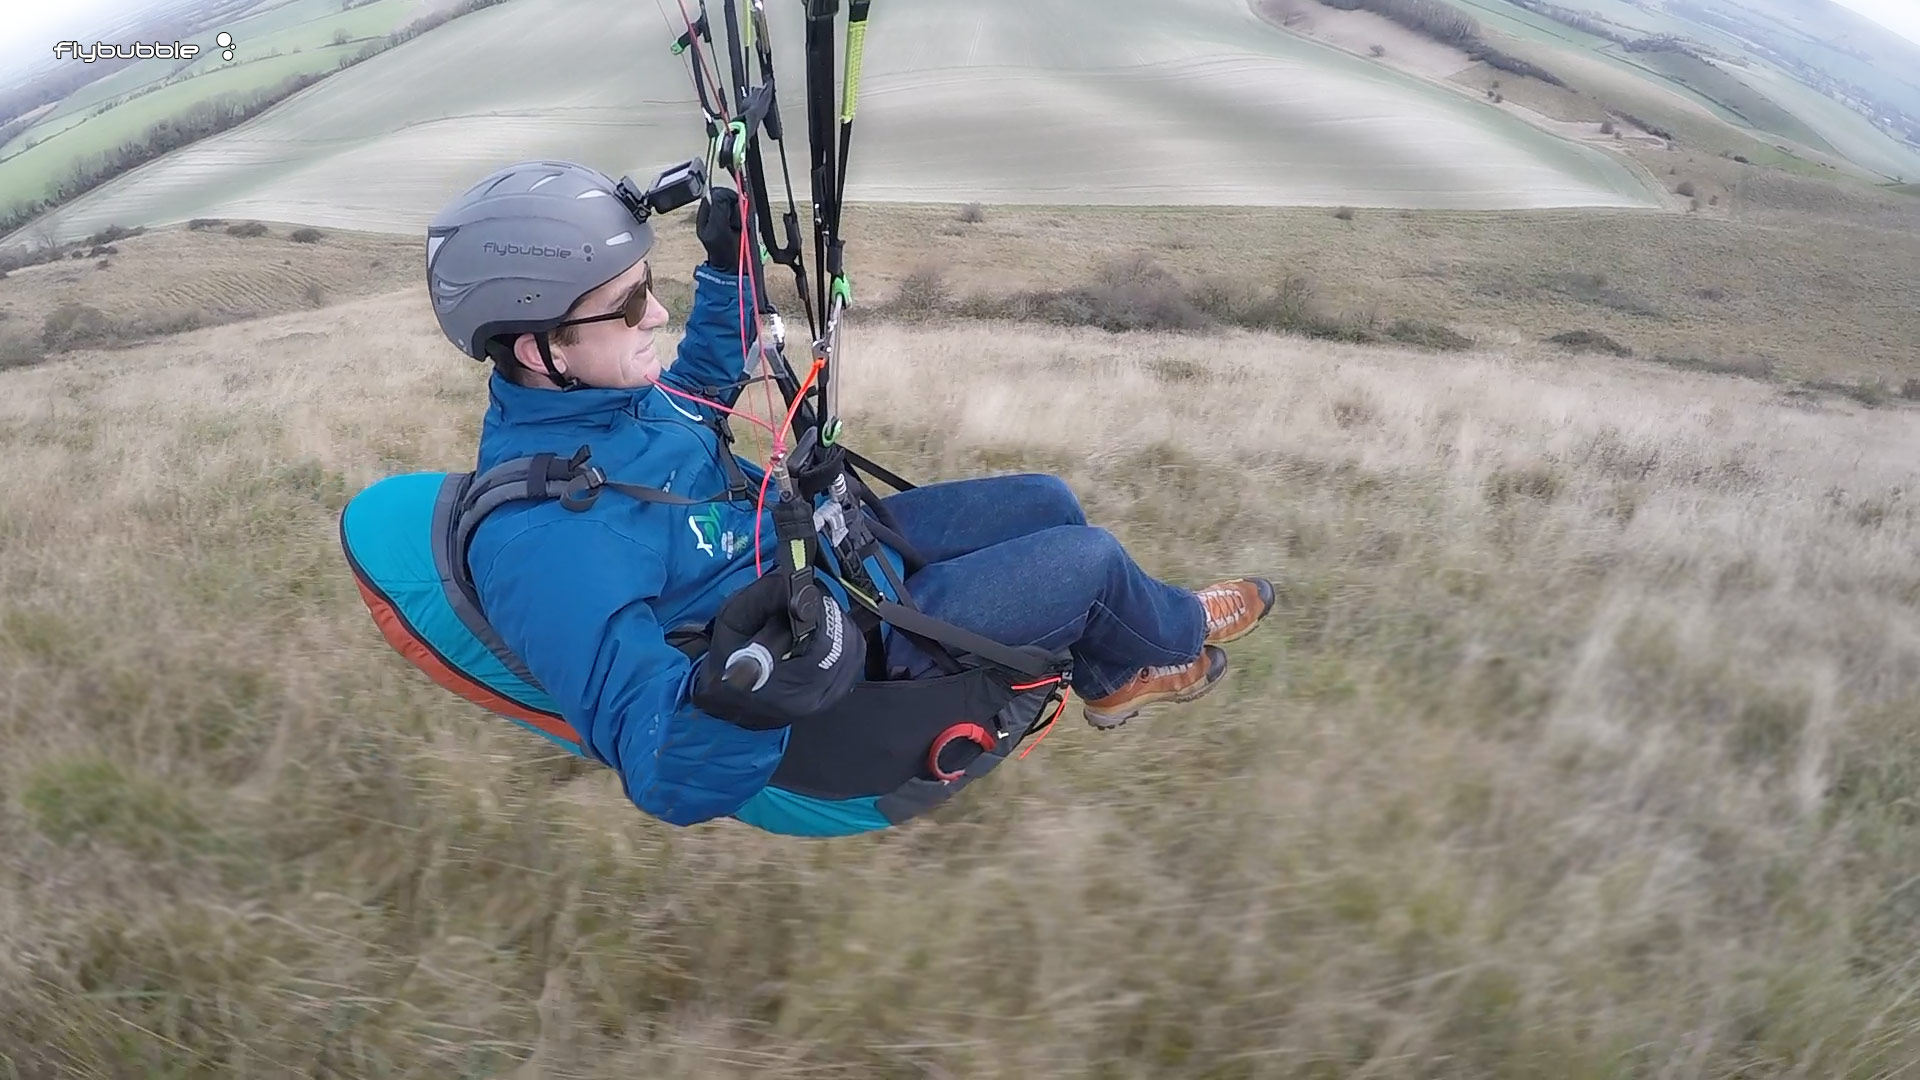 Advance Success 4 harness review - swooping over the grass